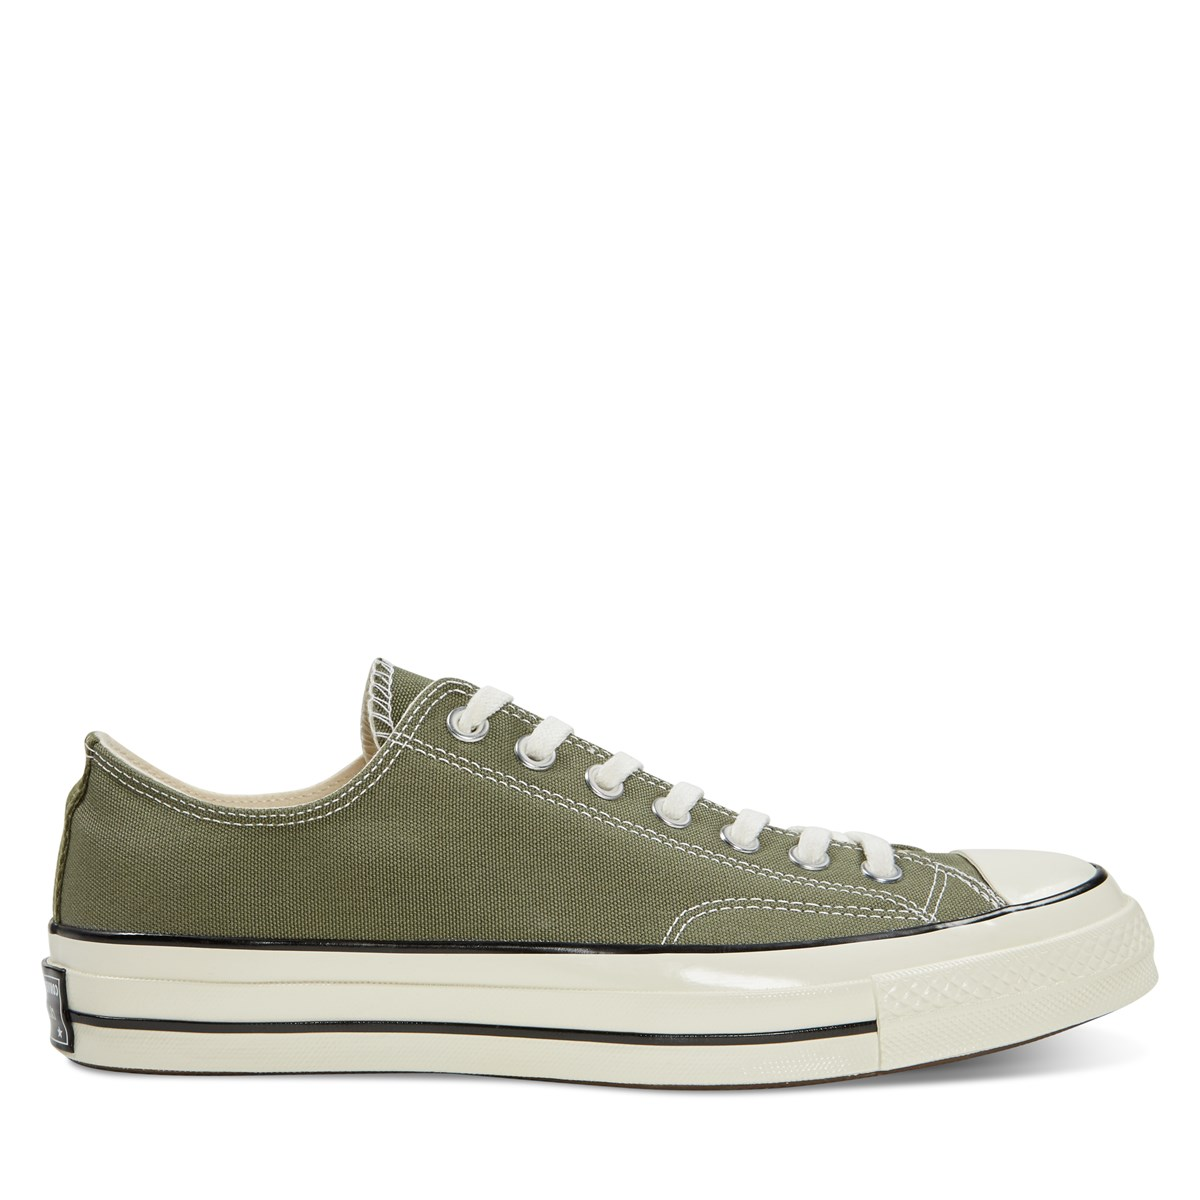 Men's Chuck 70 Vintage OX Sneakers in Khaki